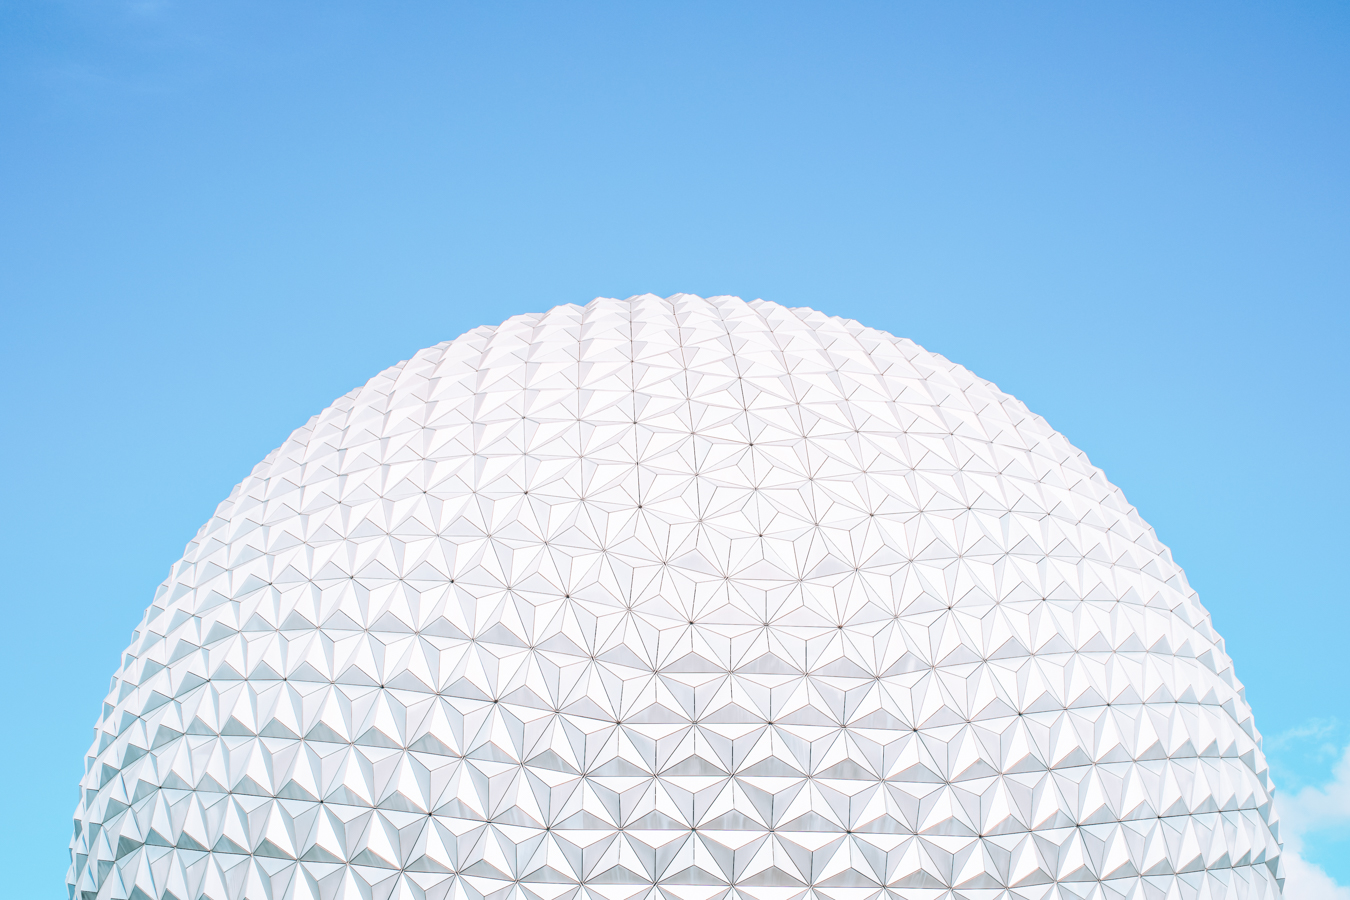 Epcot ball and flowers